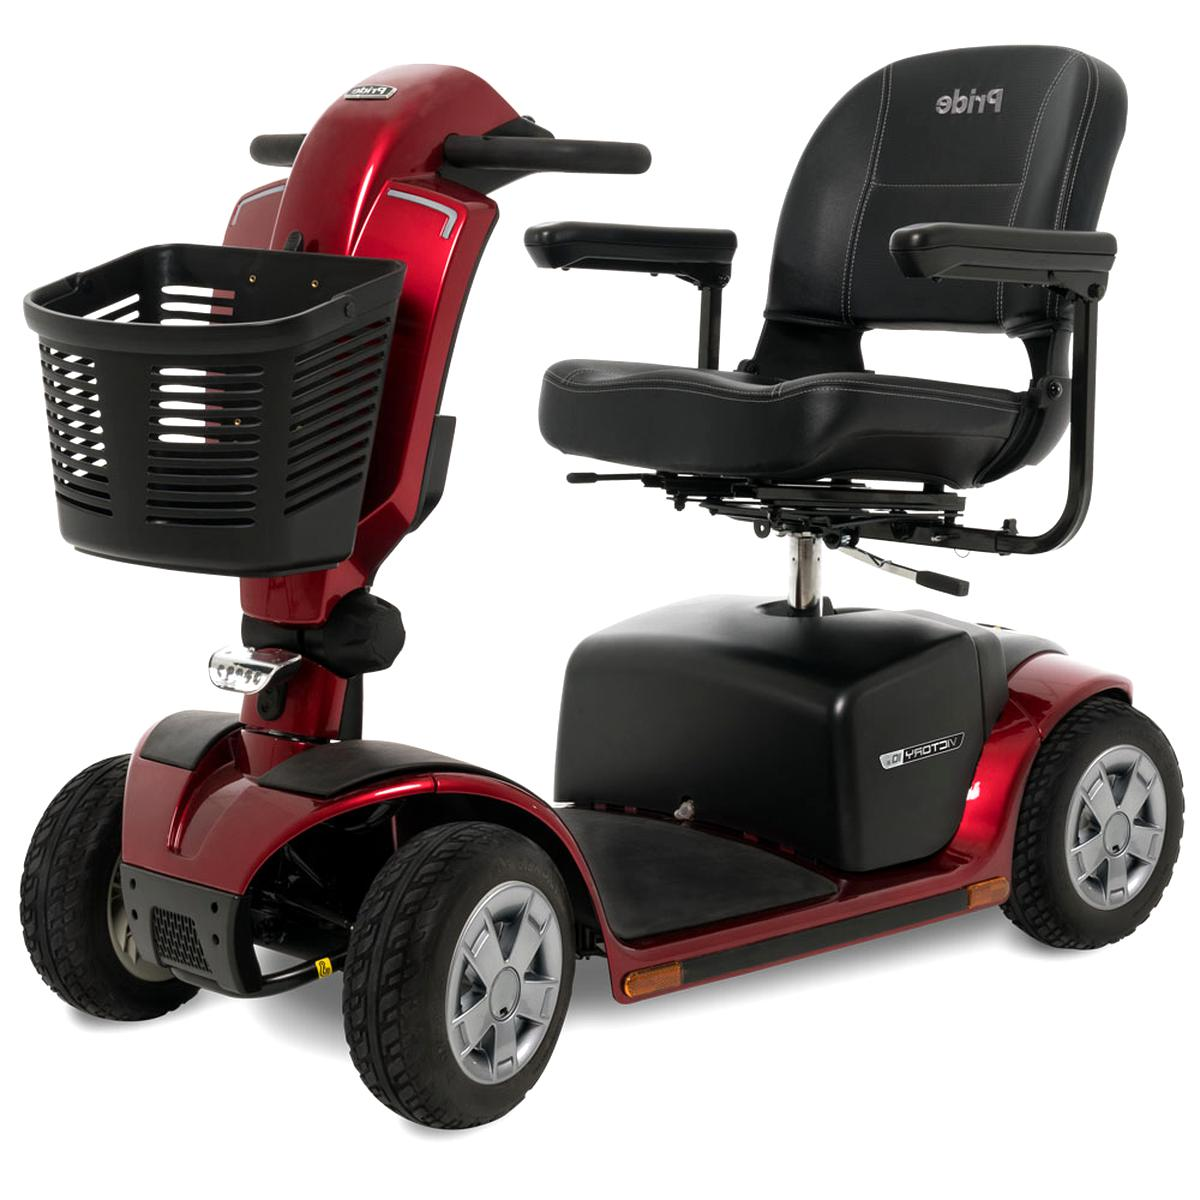 Used Mobility Scooters For Sale >> 4 Wheels Mobility Scooter For Sale Only 4 Left At 75